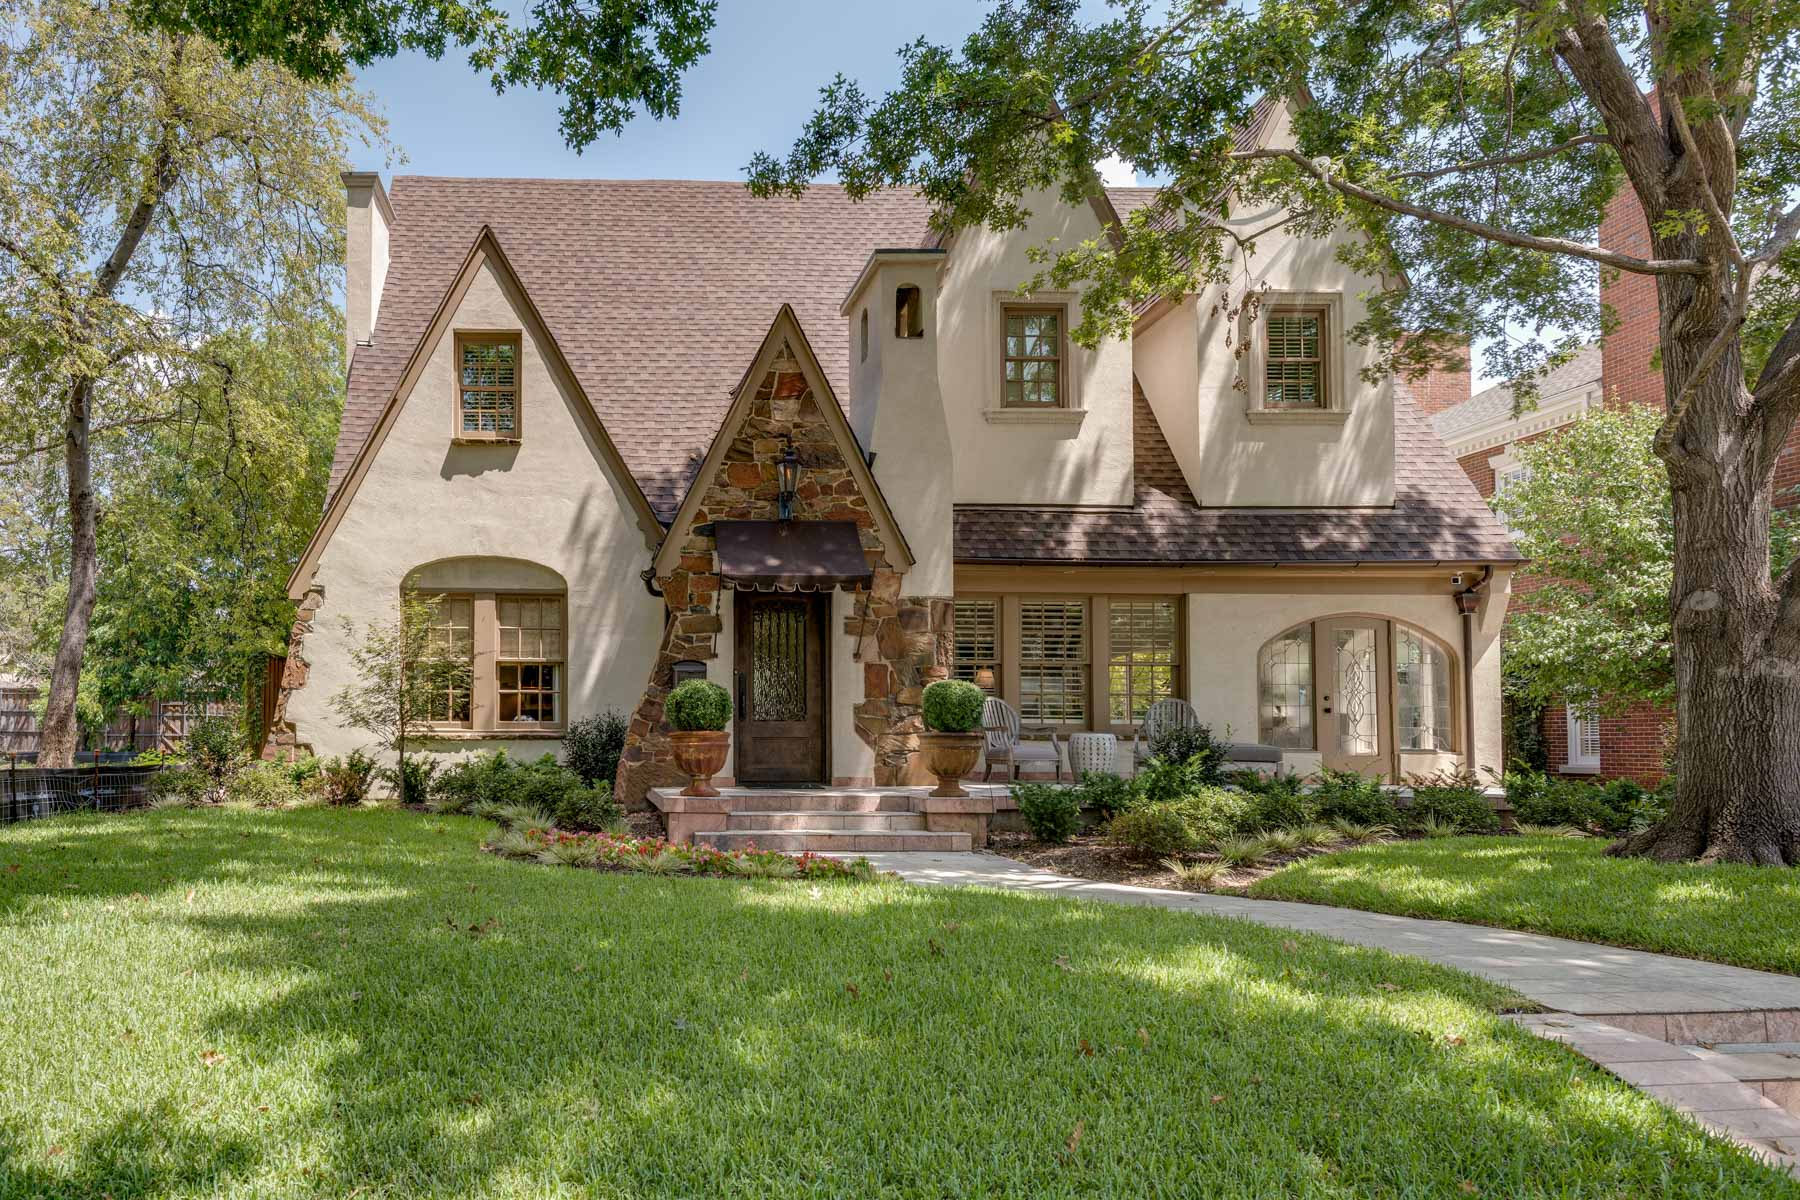 Maison unifamiliale pour l Vente à Beautifully Restored Highland Park Tudor 4532 Belclaire Ave Dallas, Texas, 75205 États-Unis